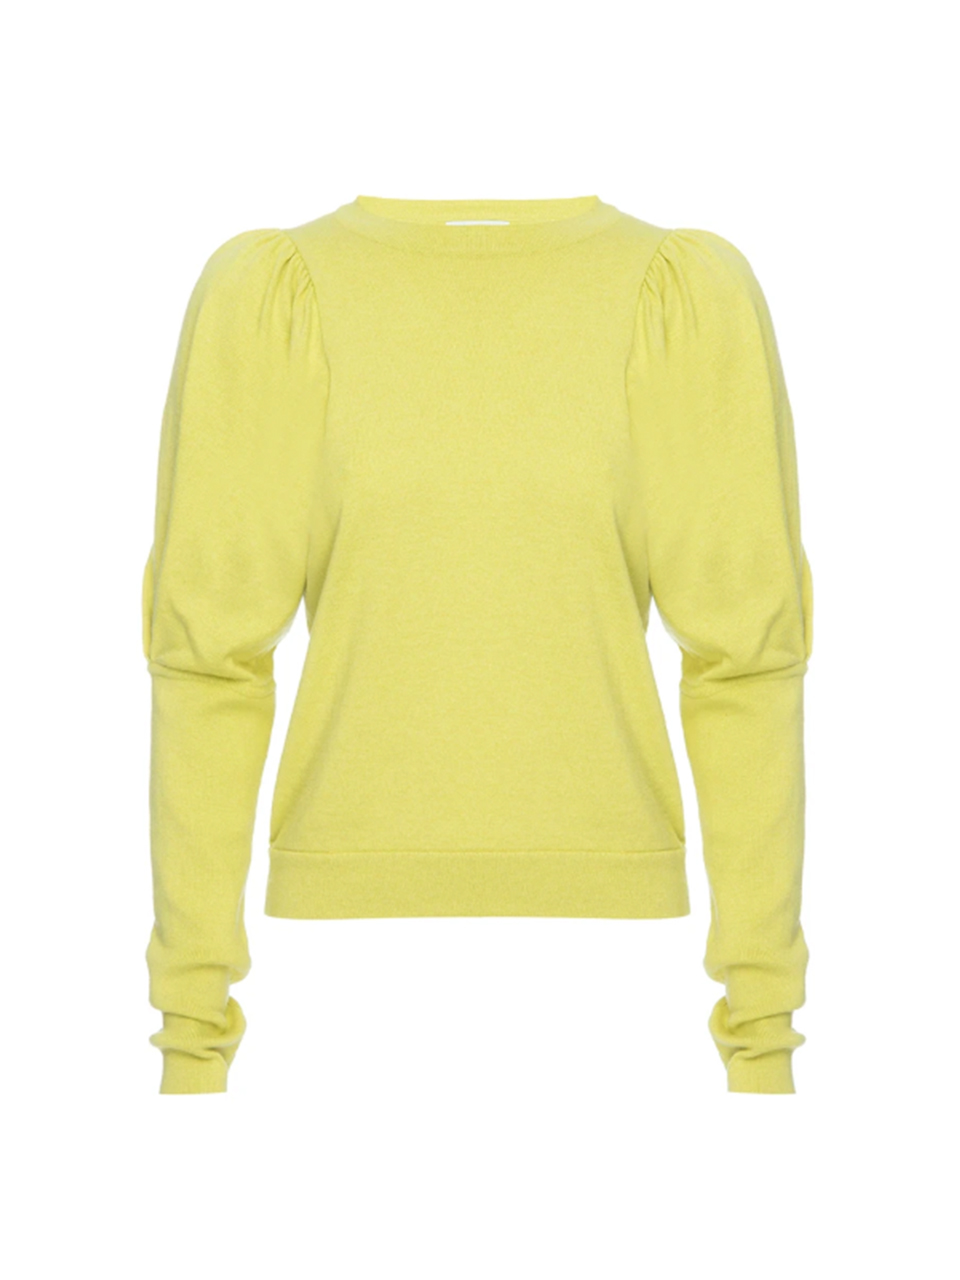 Kali Sweater in Chartreuse